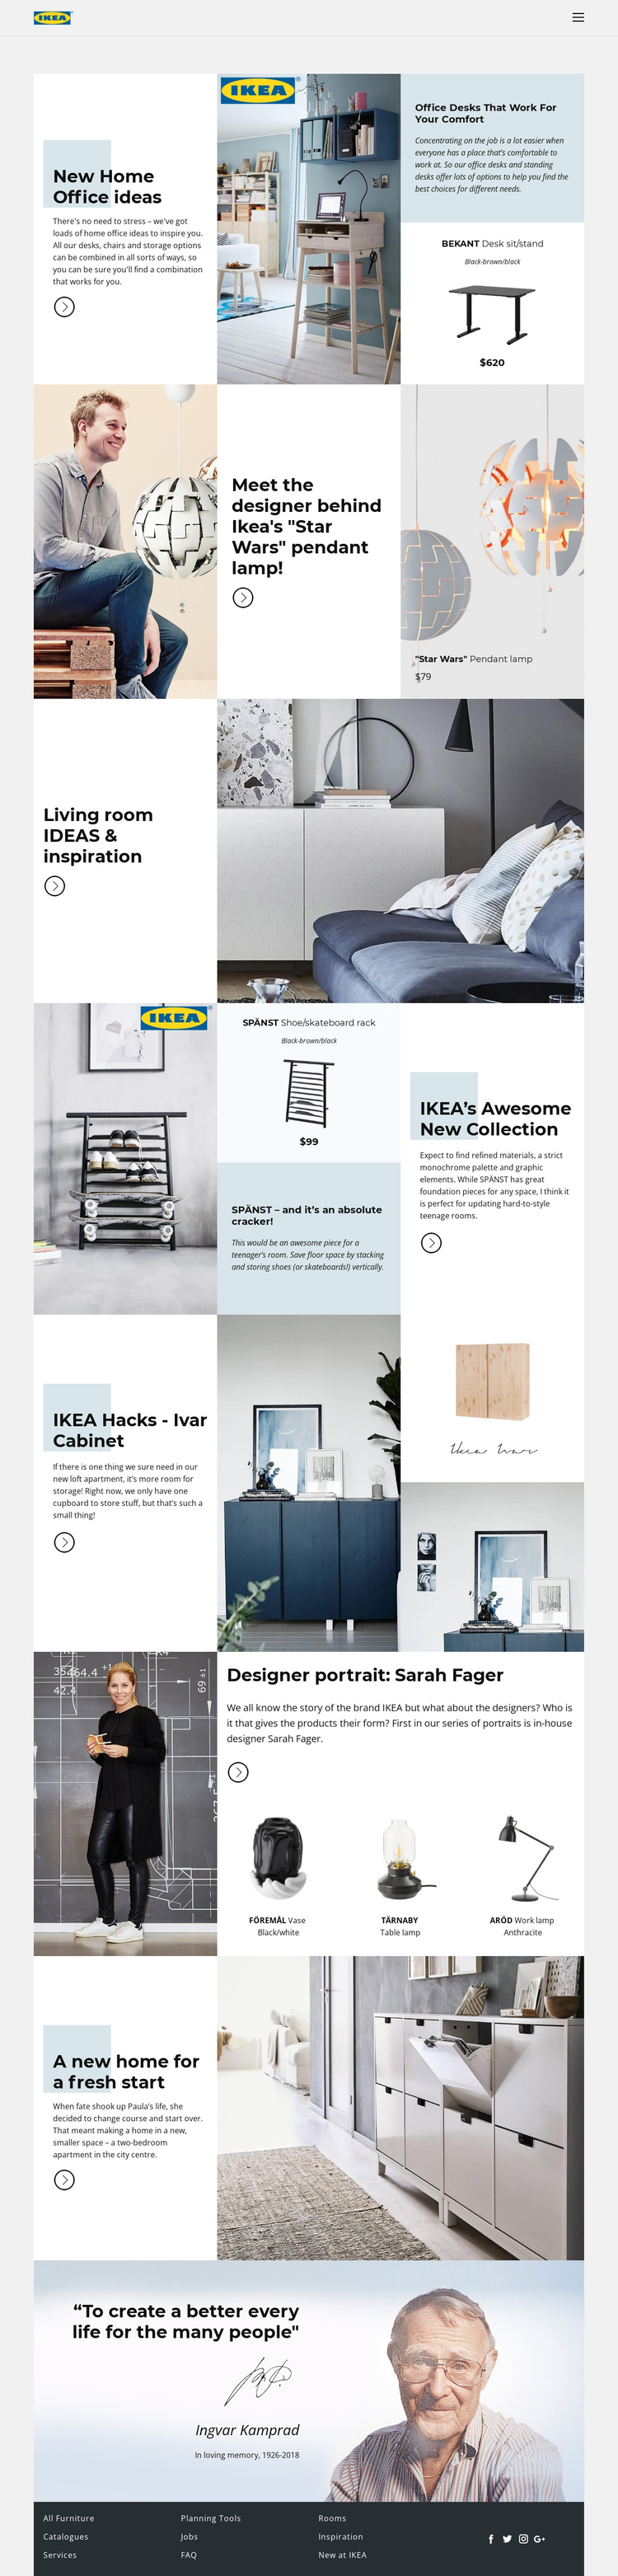 Inspiration from IKEA Website Builder Software